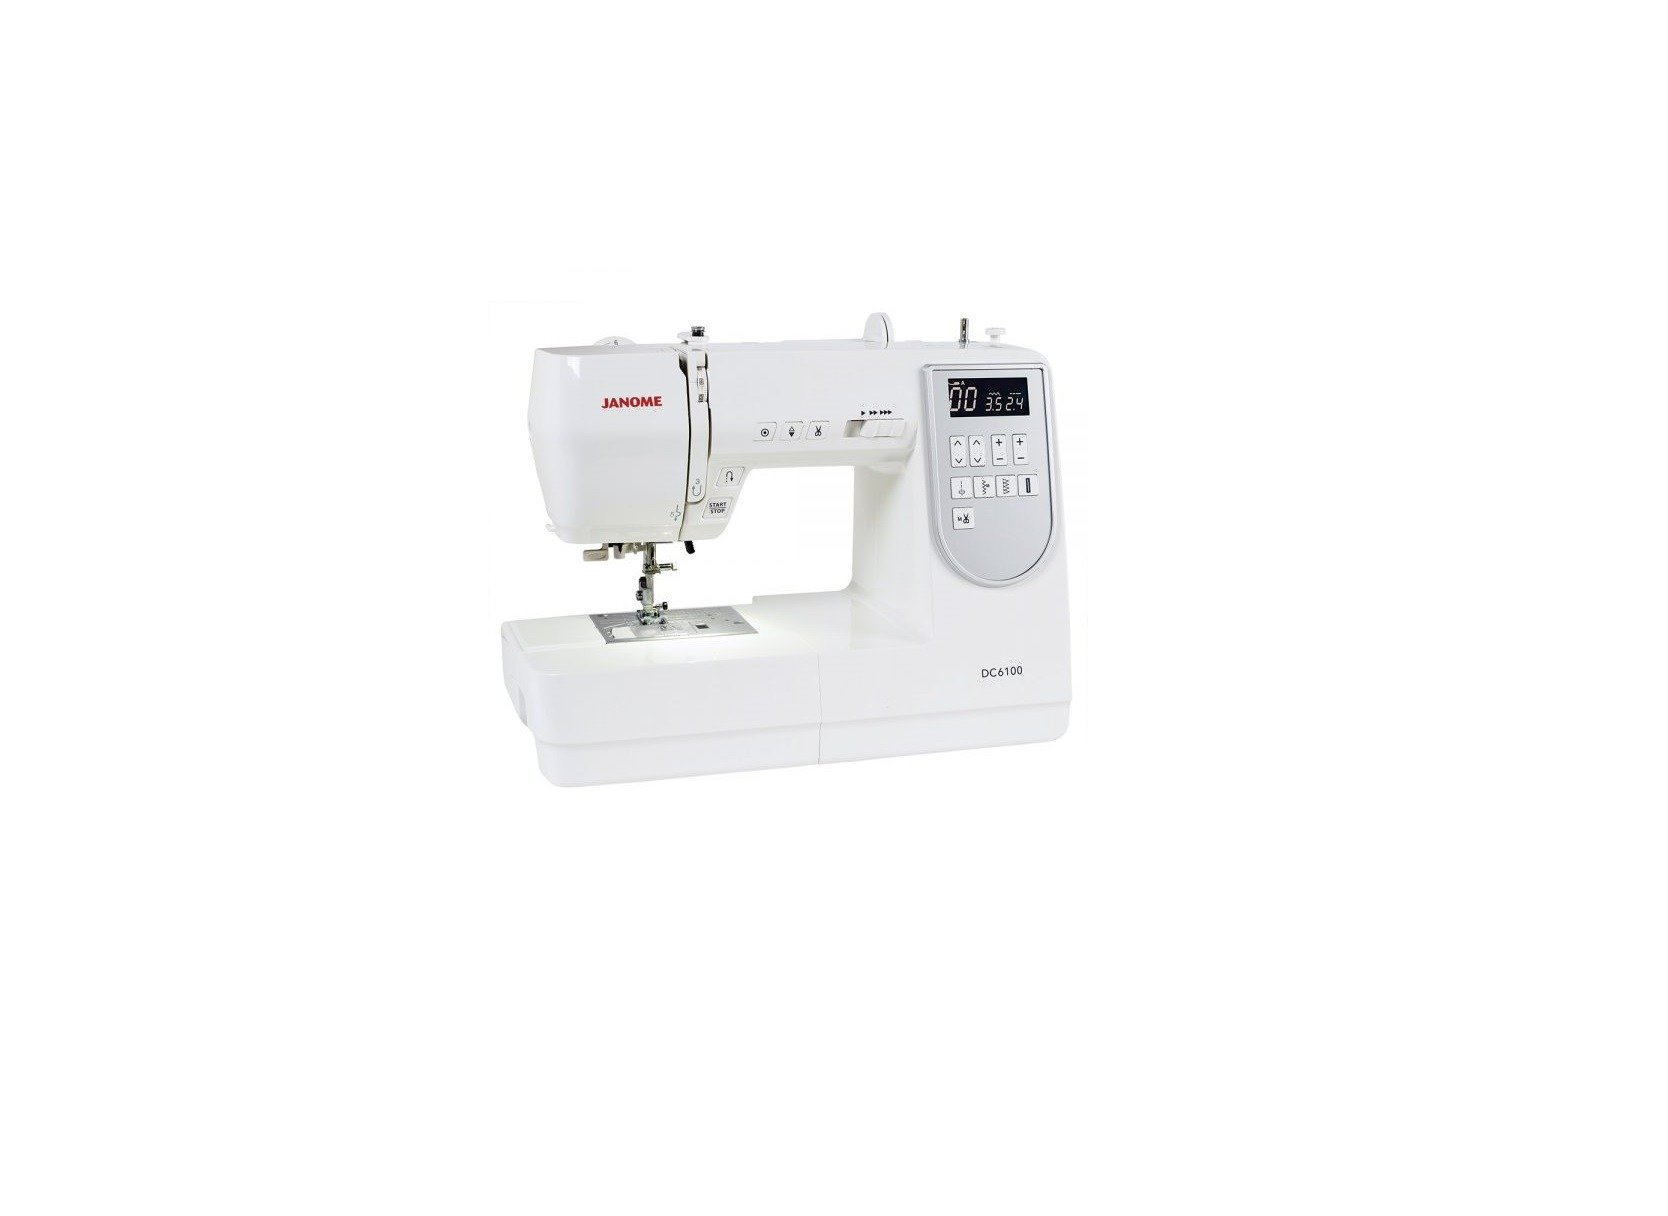 DC6100 Janome